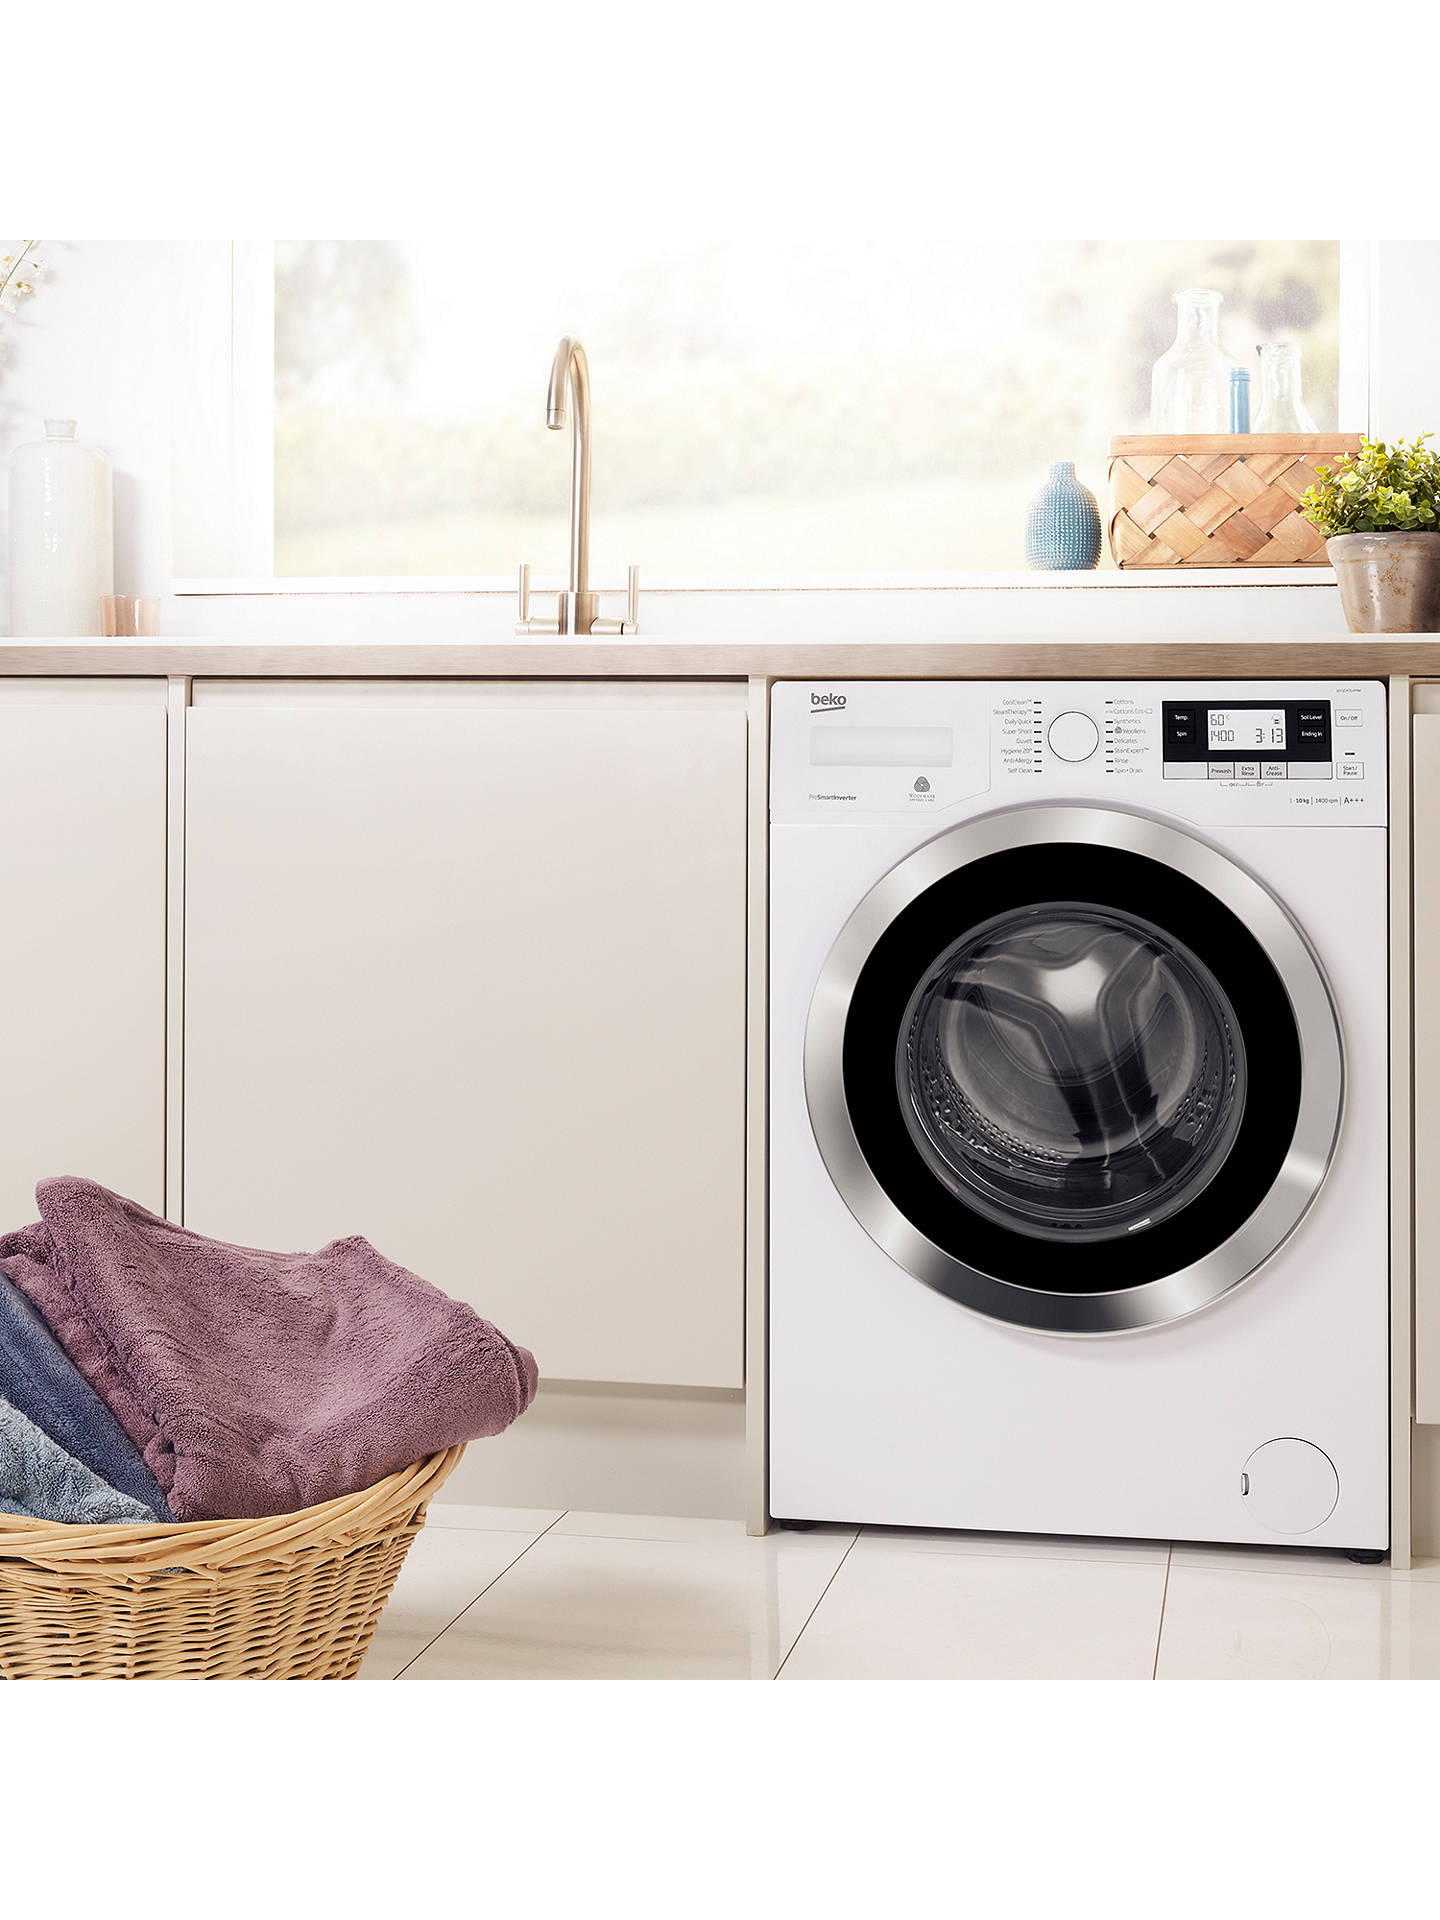 Buy Beko WY104764MW Freestanding Washing Machine, 10kg Load, A+++ Energy Rating, 1400rpm Spin, White Online at johnlewis.com